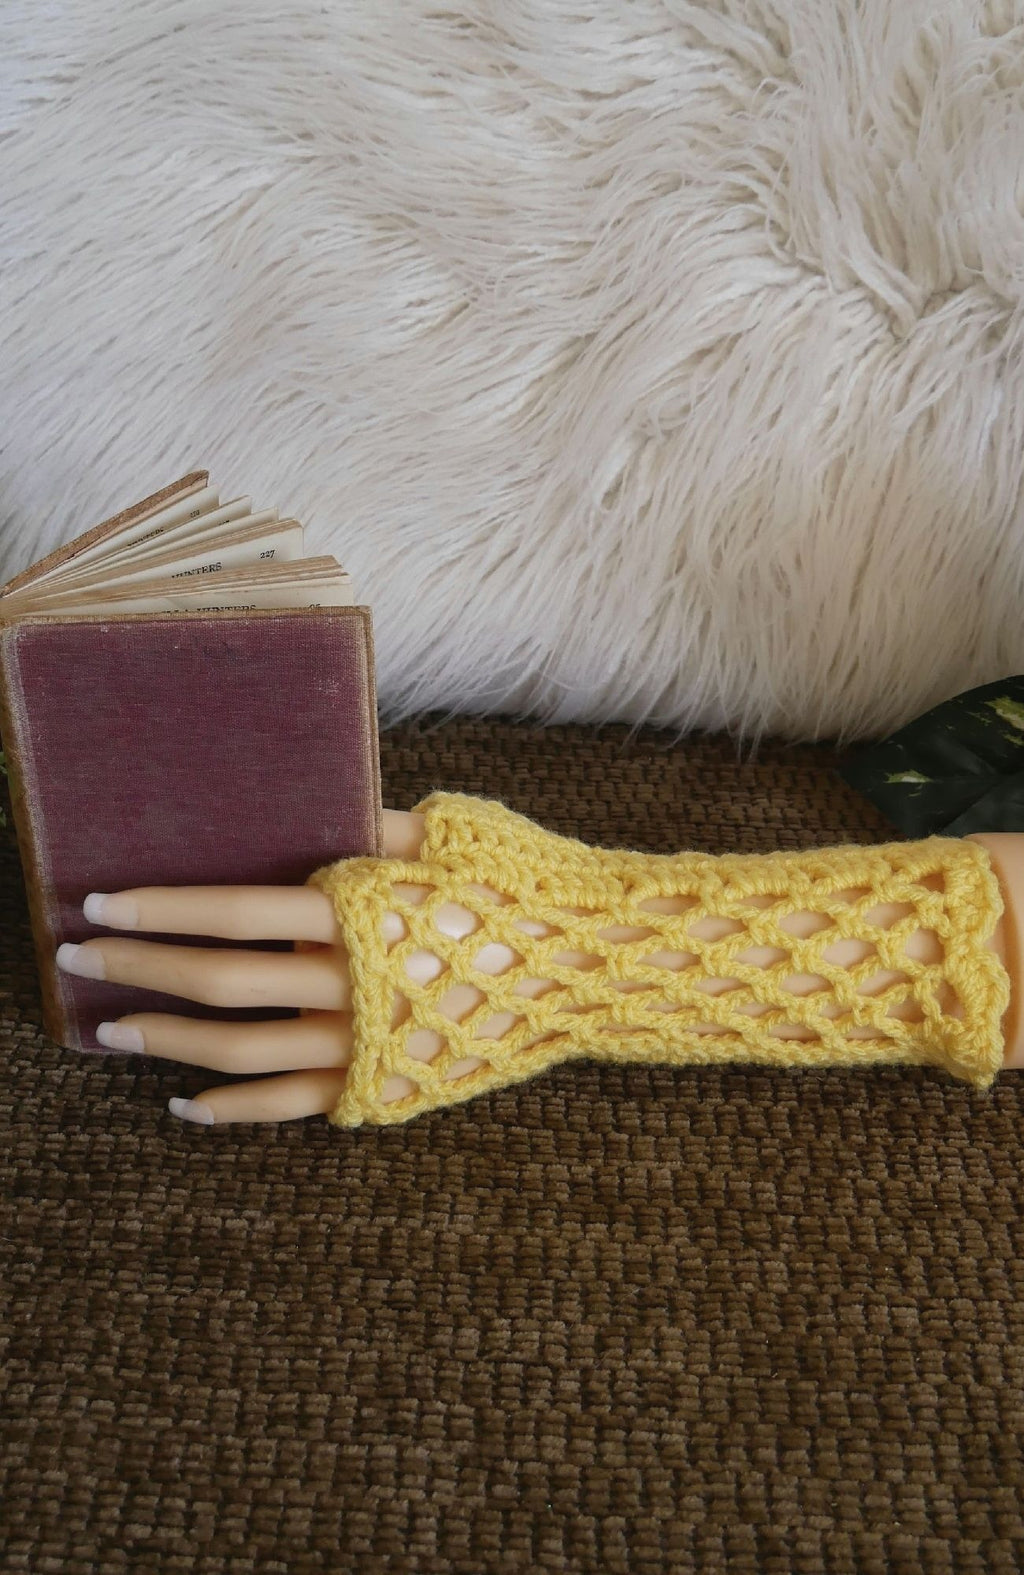 Burlesque-Lace-Fingerless-Gloves-Nchanted-Gifts